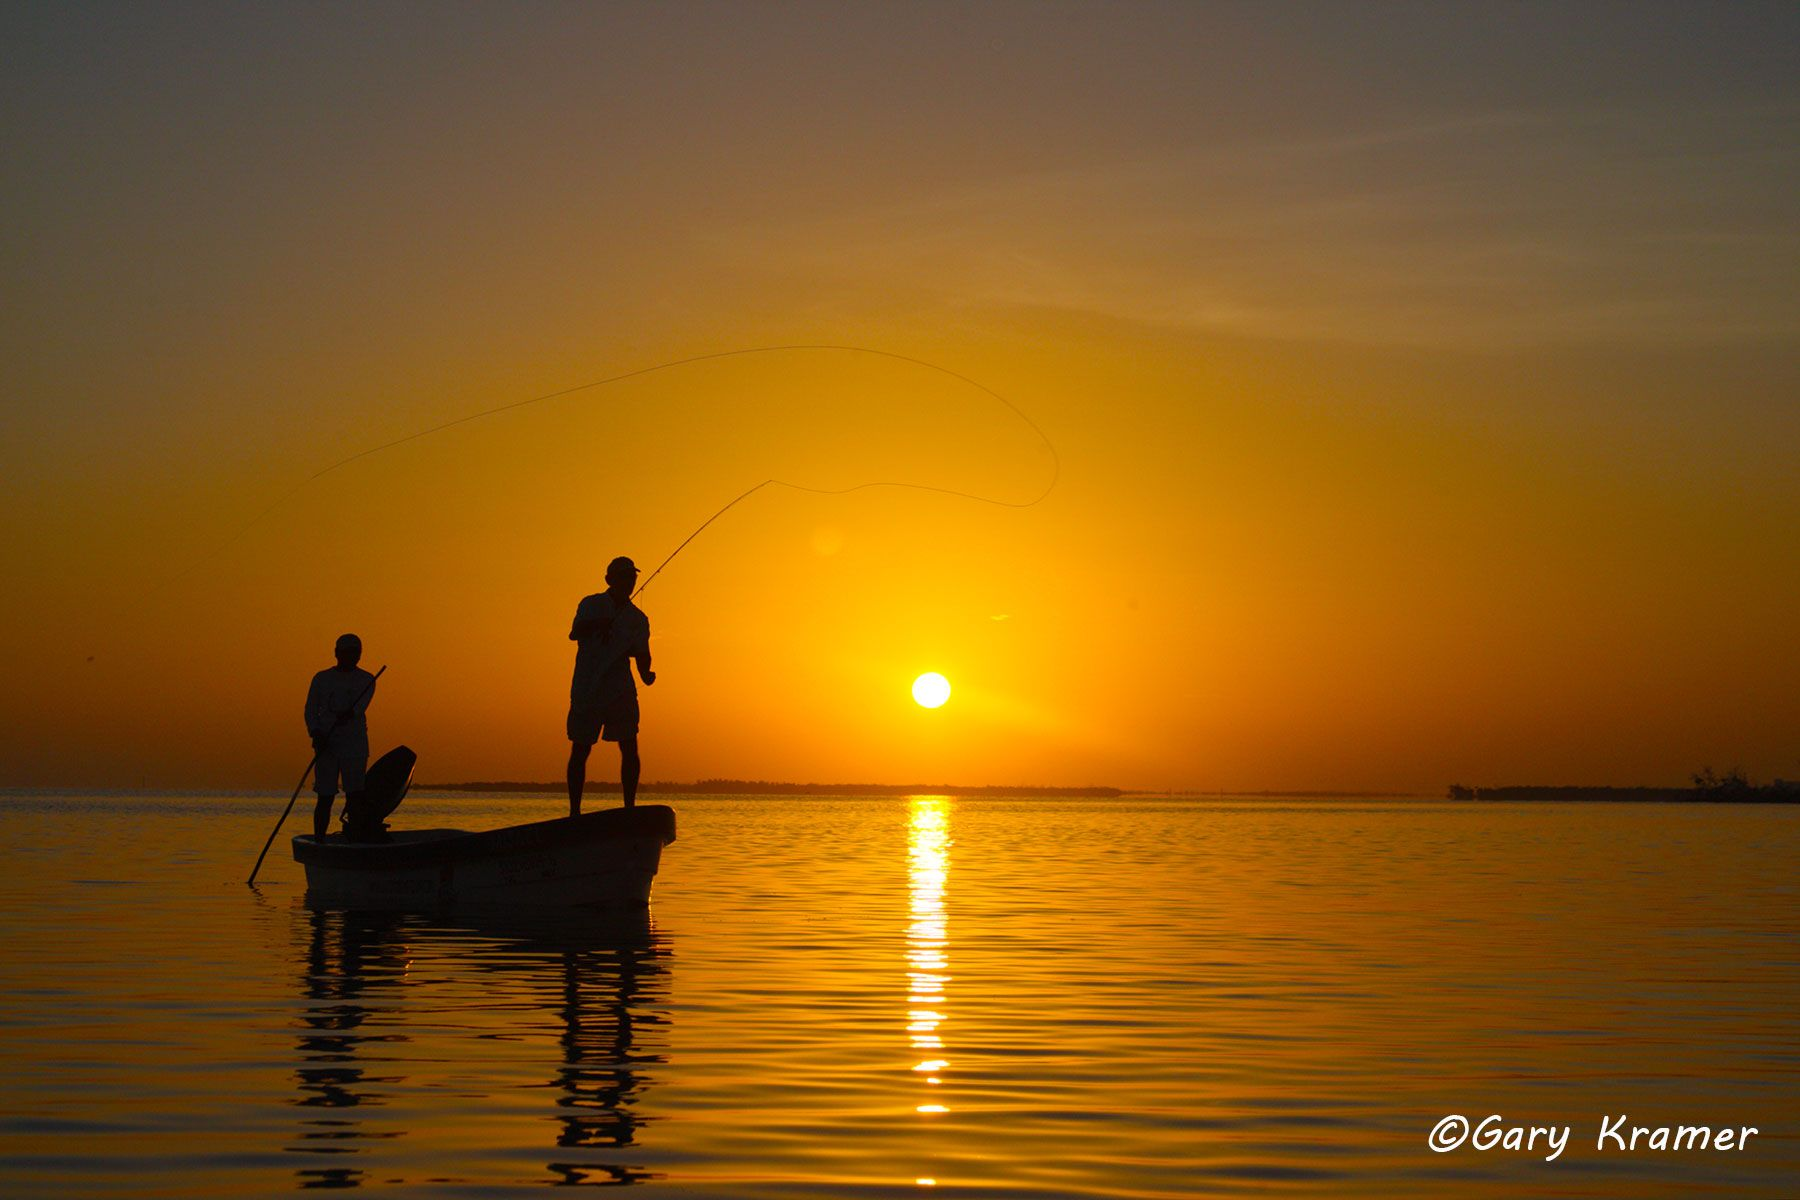 Flyfisherman/guide fishing from boat at sunrise/sunset, Mexico - NFFsg#185d